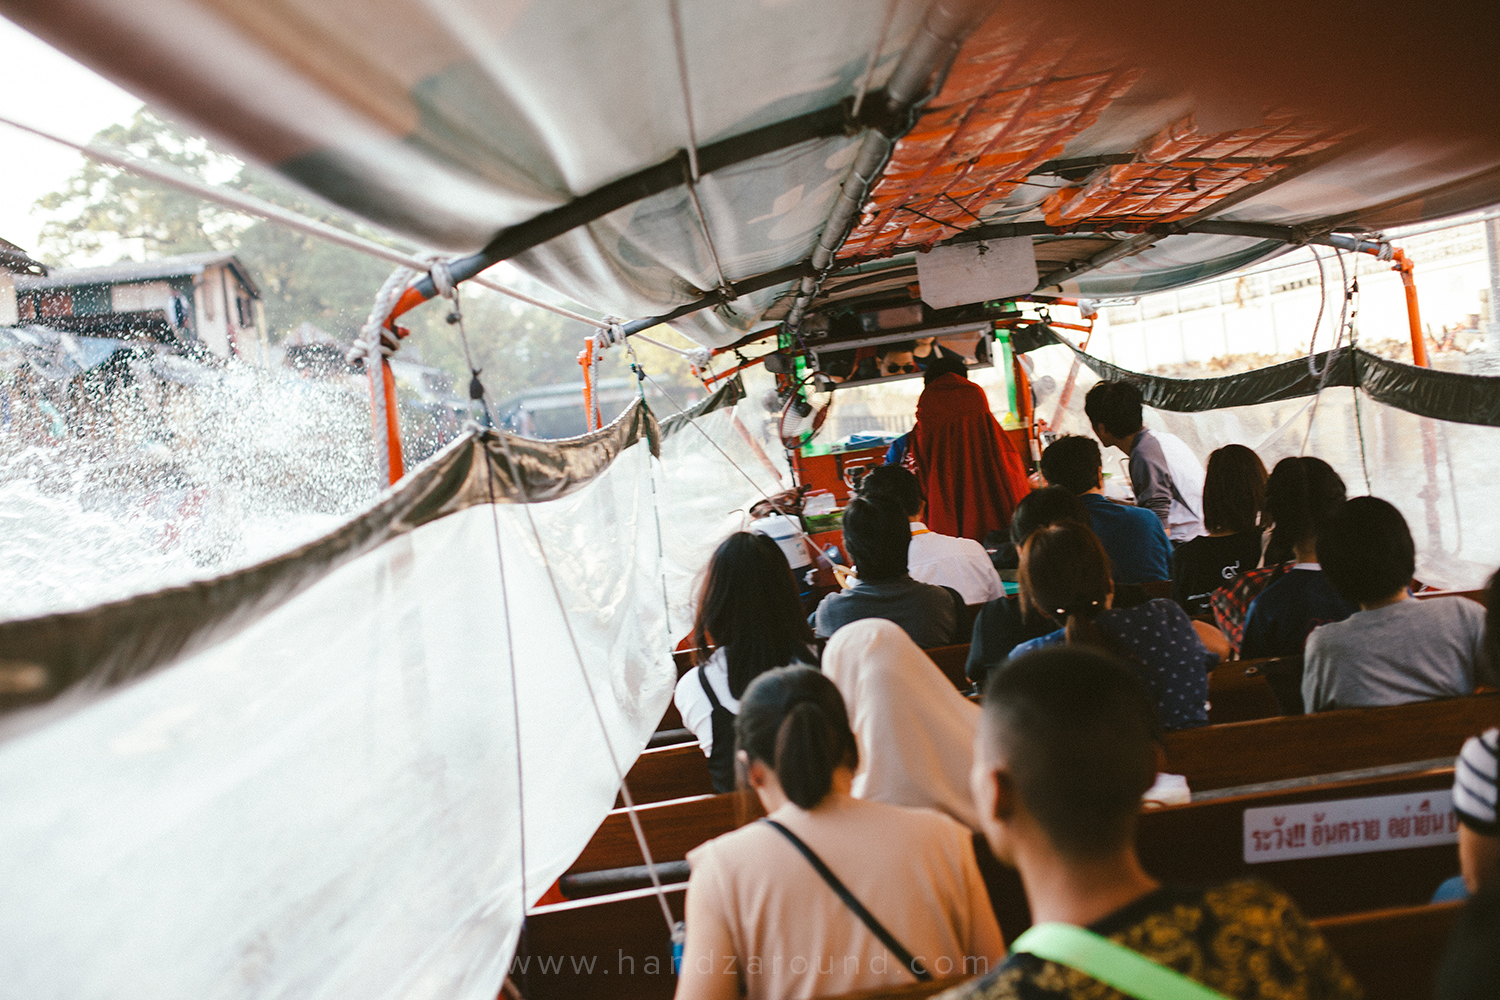 The Bangkok hospital might have been posh, but instead of taking a posh way of transport, such as taxi, and standing in the traffic, you'll be better off jumping on to a water taxi that skips the traffic and lets you walk to the hospital in less than 5 minutes!